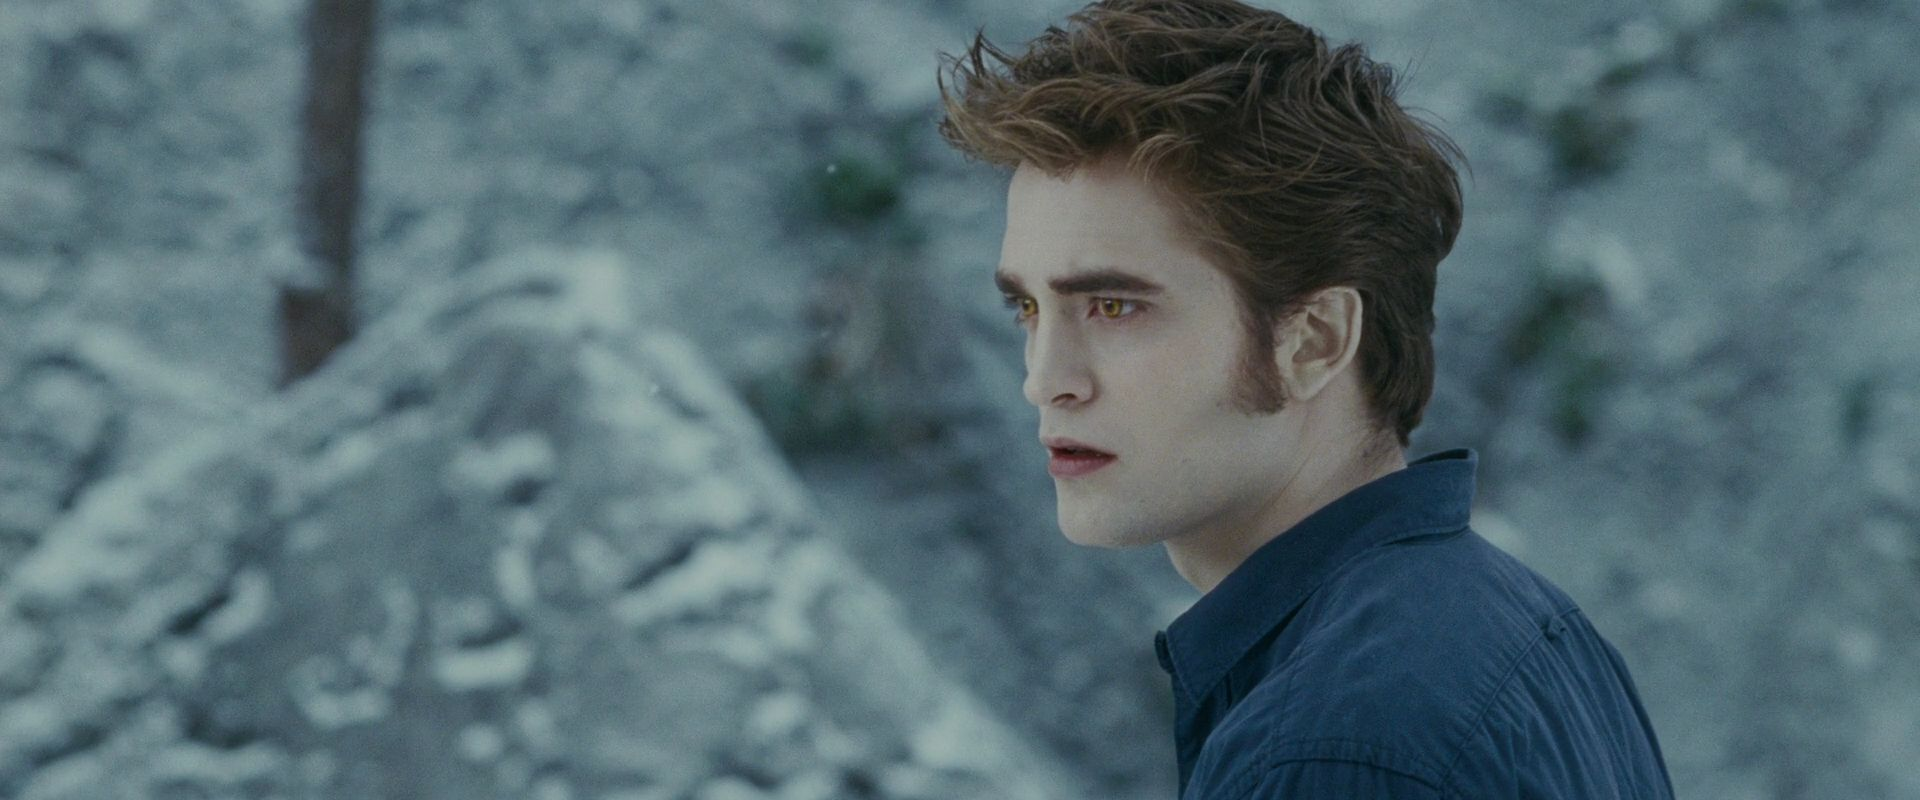 Edward cullen edward cullen photo 18085374 fanpop Twilight edward photos